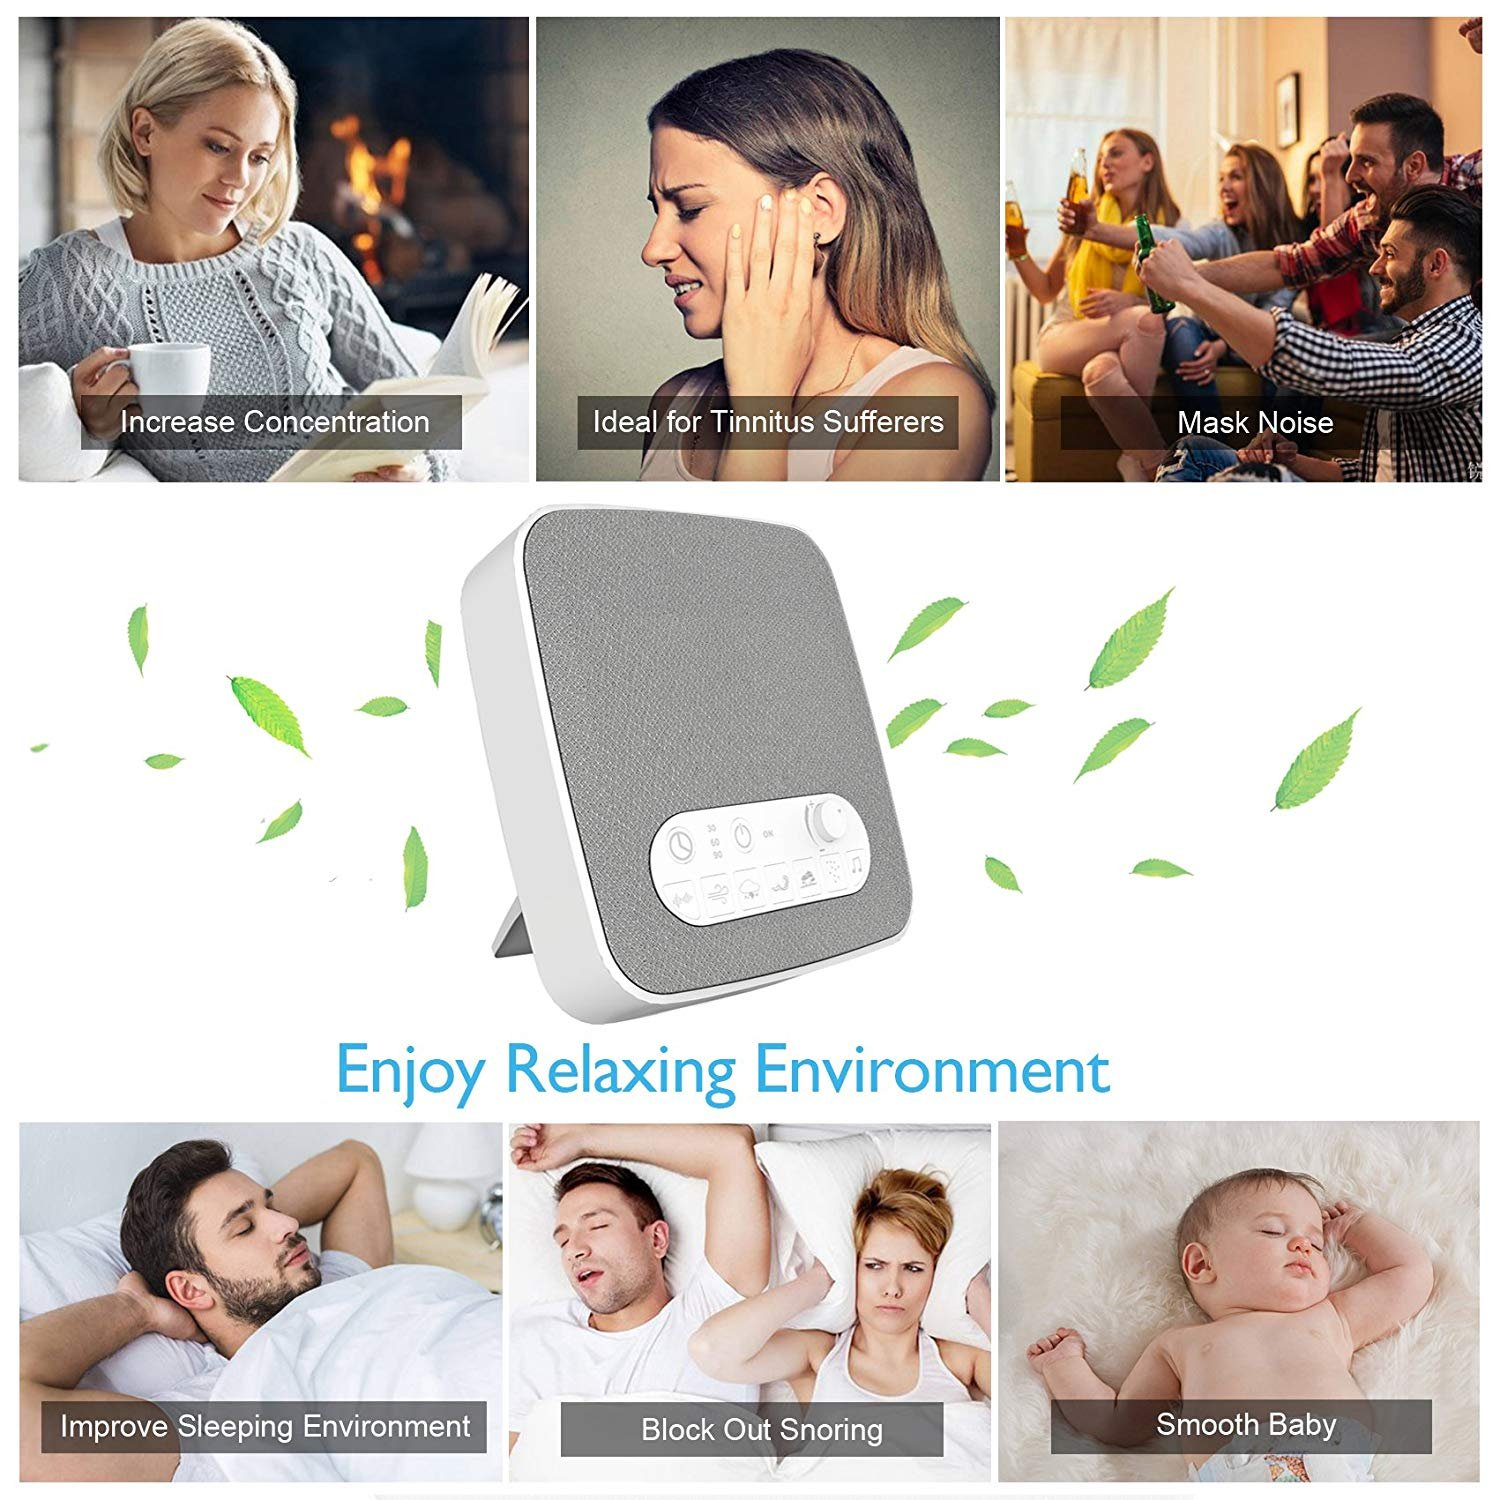 White Noise Machine for Sleeping, BESTHING Sleep Sound Machine with Non-Looping Soothing Sounds for Baby Adult Traveler, Portable for Home Office Travel. Built in USB Output Charger & Timer. by BESTHING (Image #5)